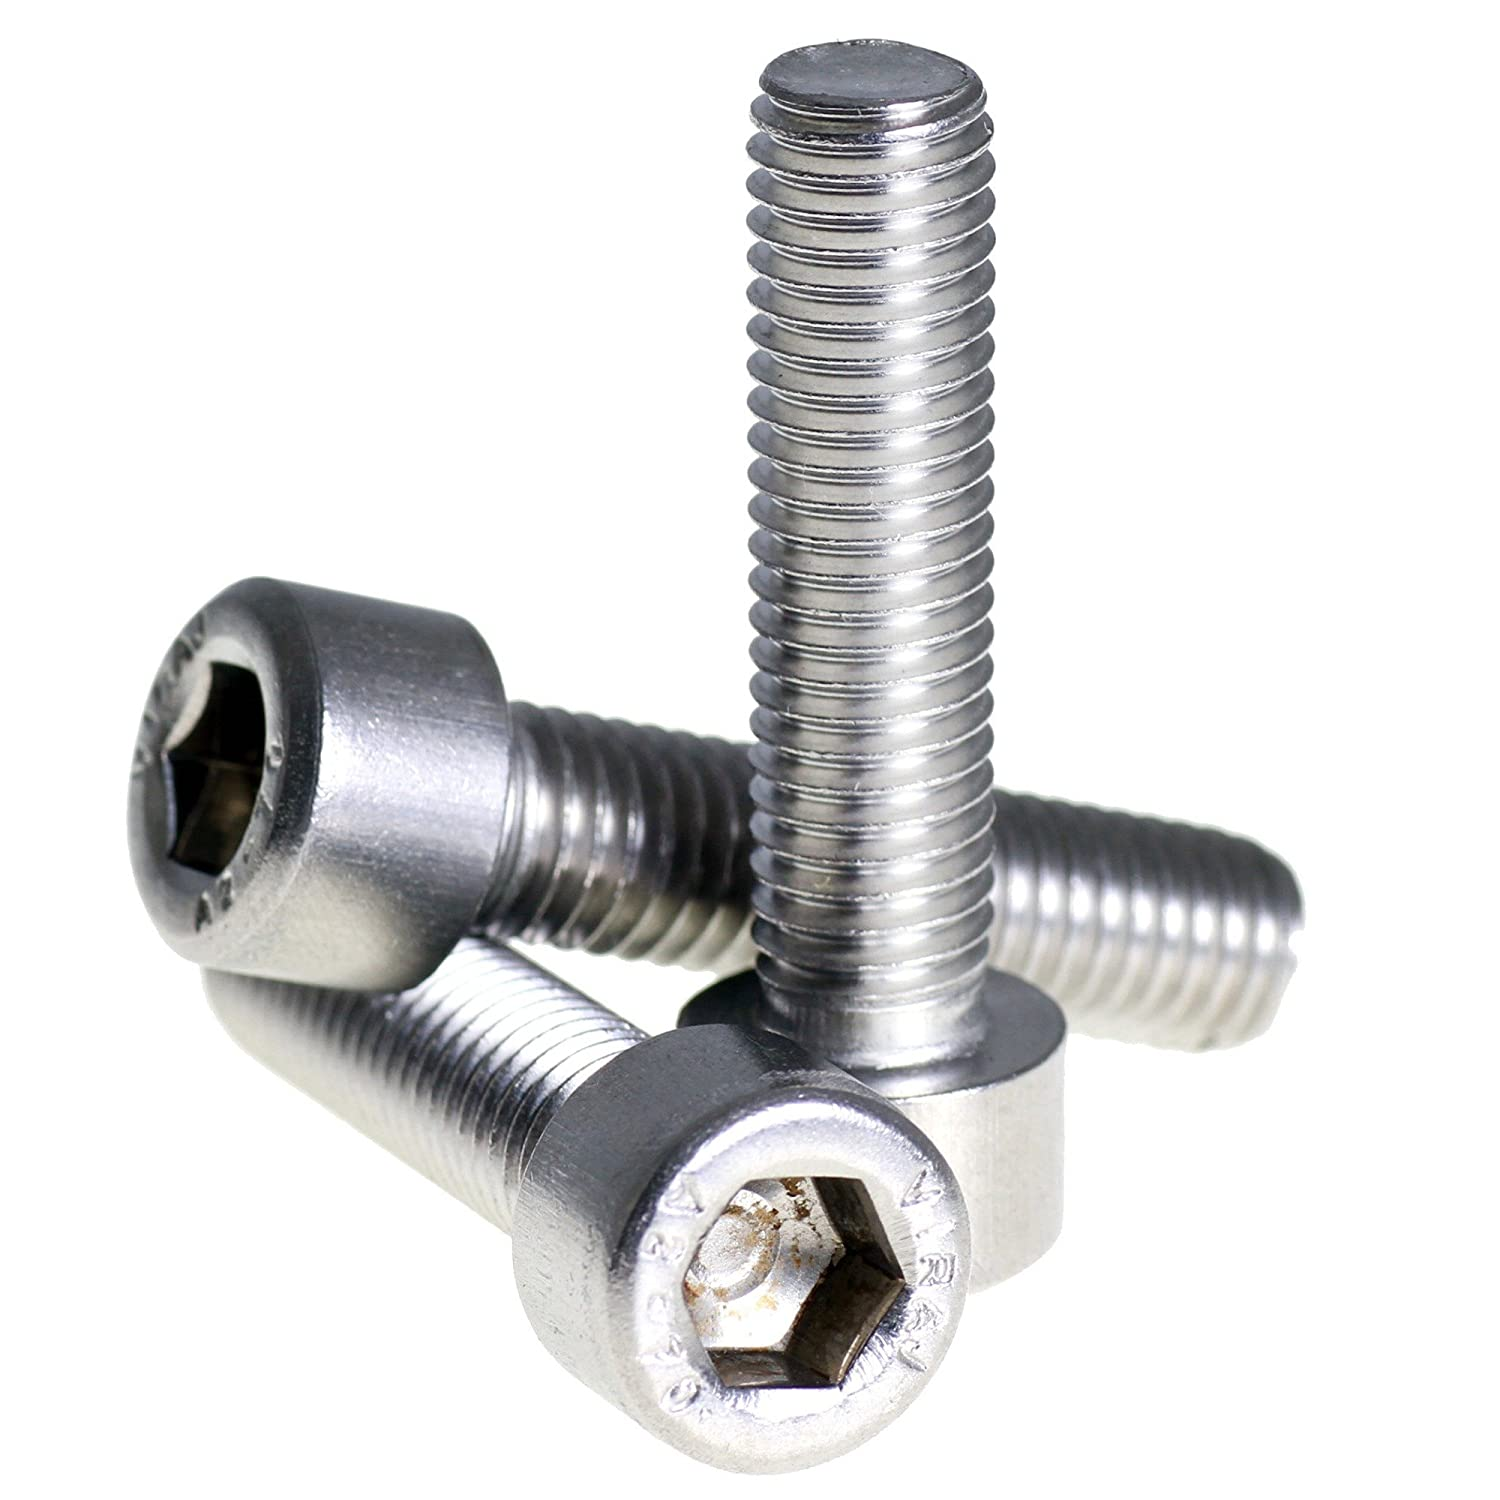 Stainless Steel M5 X 45 Button Socket Head Screw A2 10 Pack